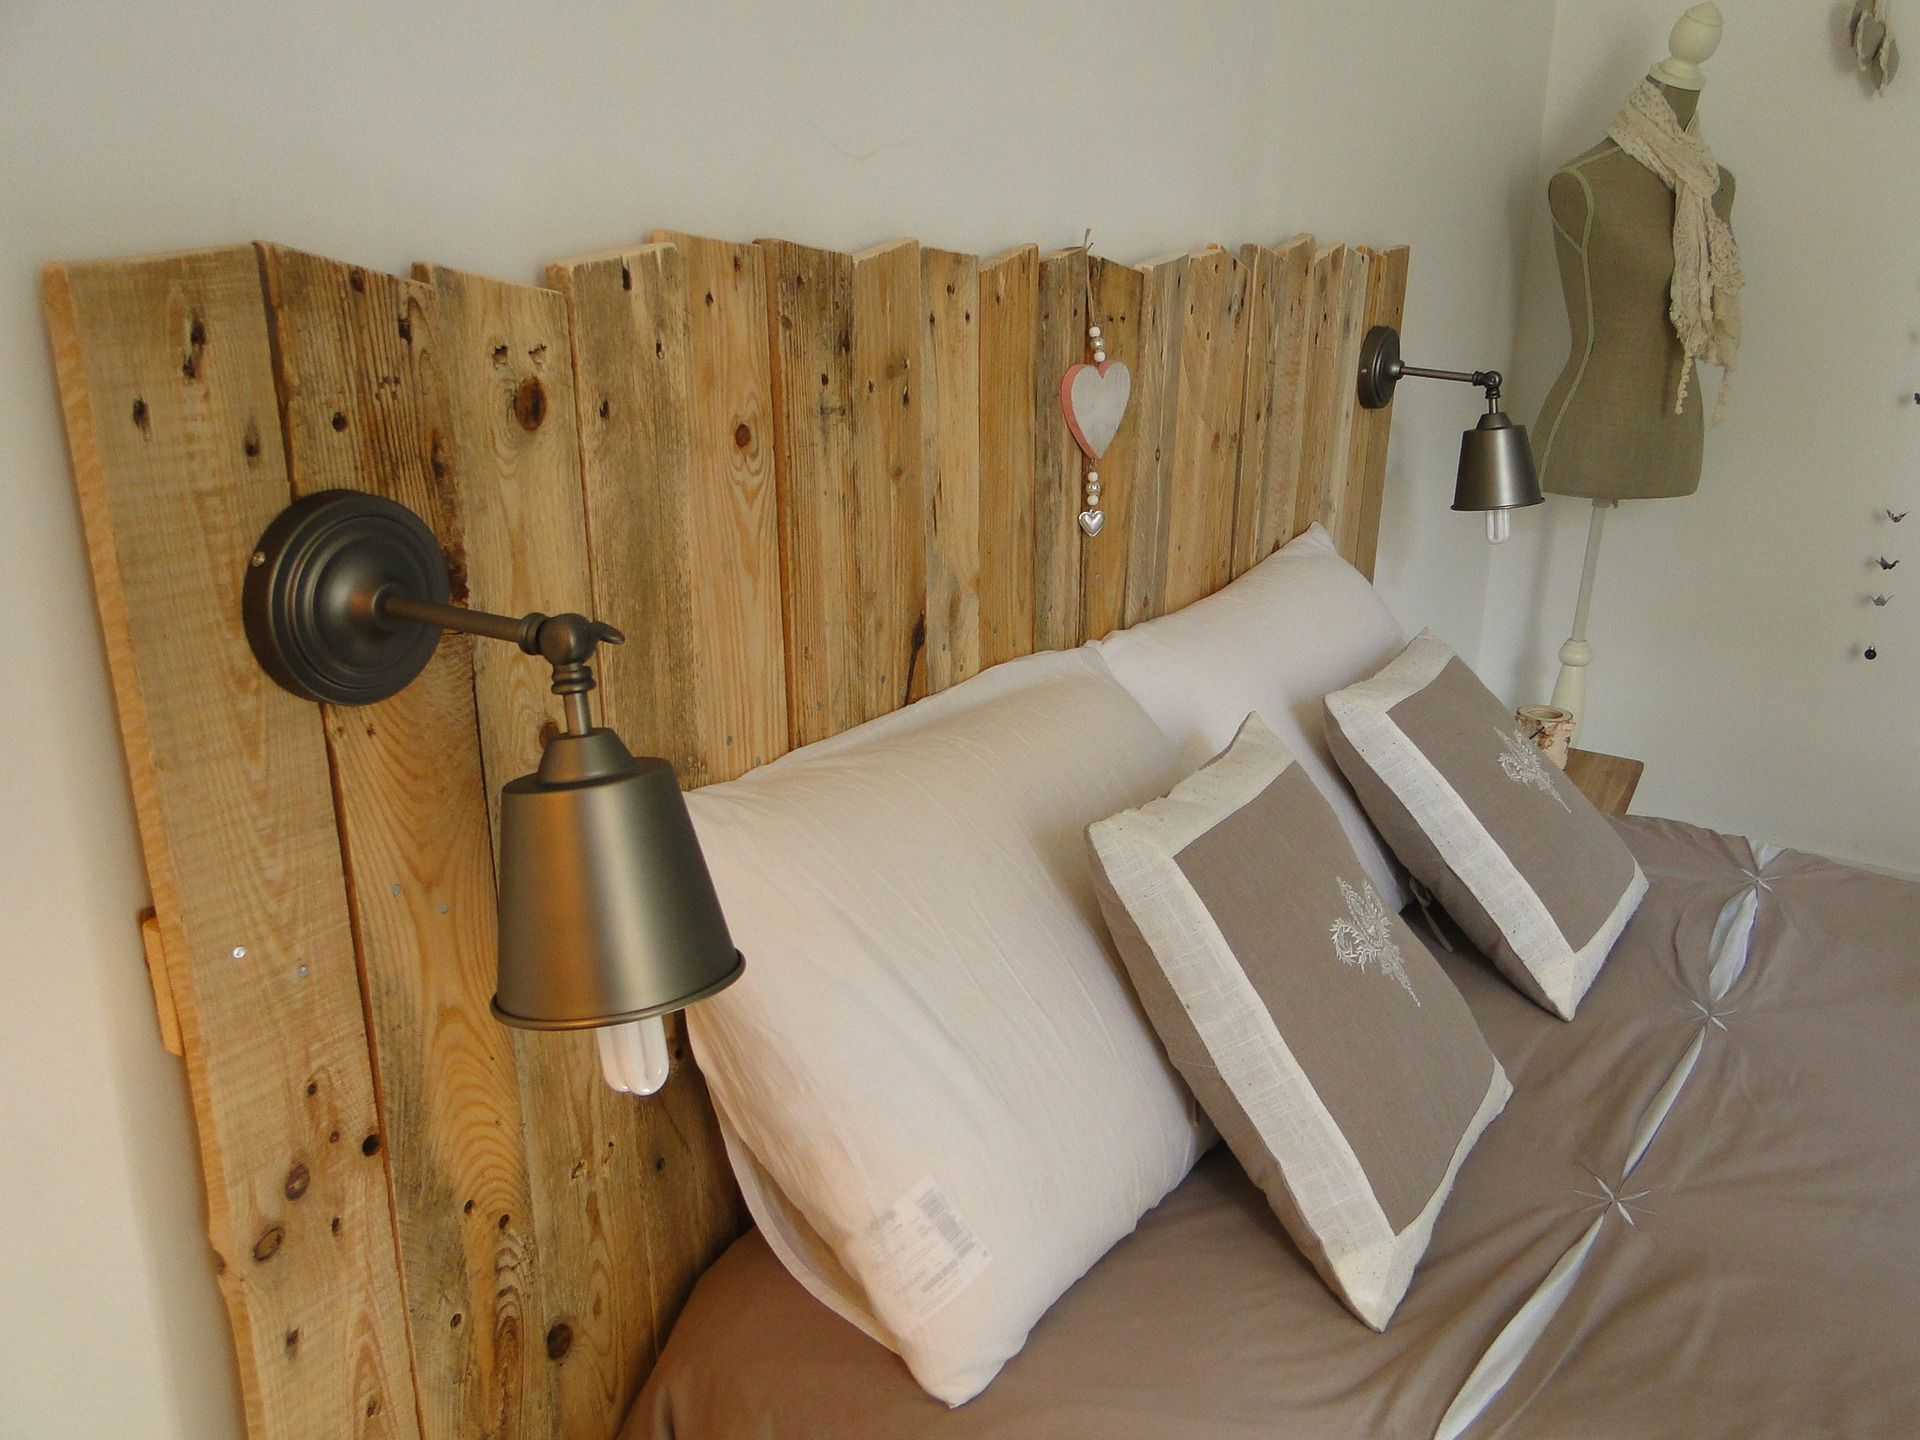 t te de lit en bois avec luminaires t tes de lit en bois. Black Bedroom Furniture Sets. Home Design Ideas